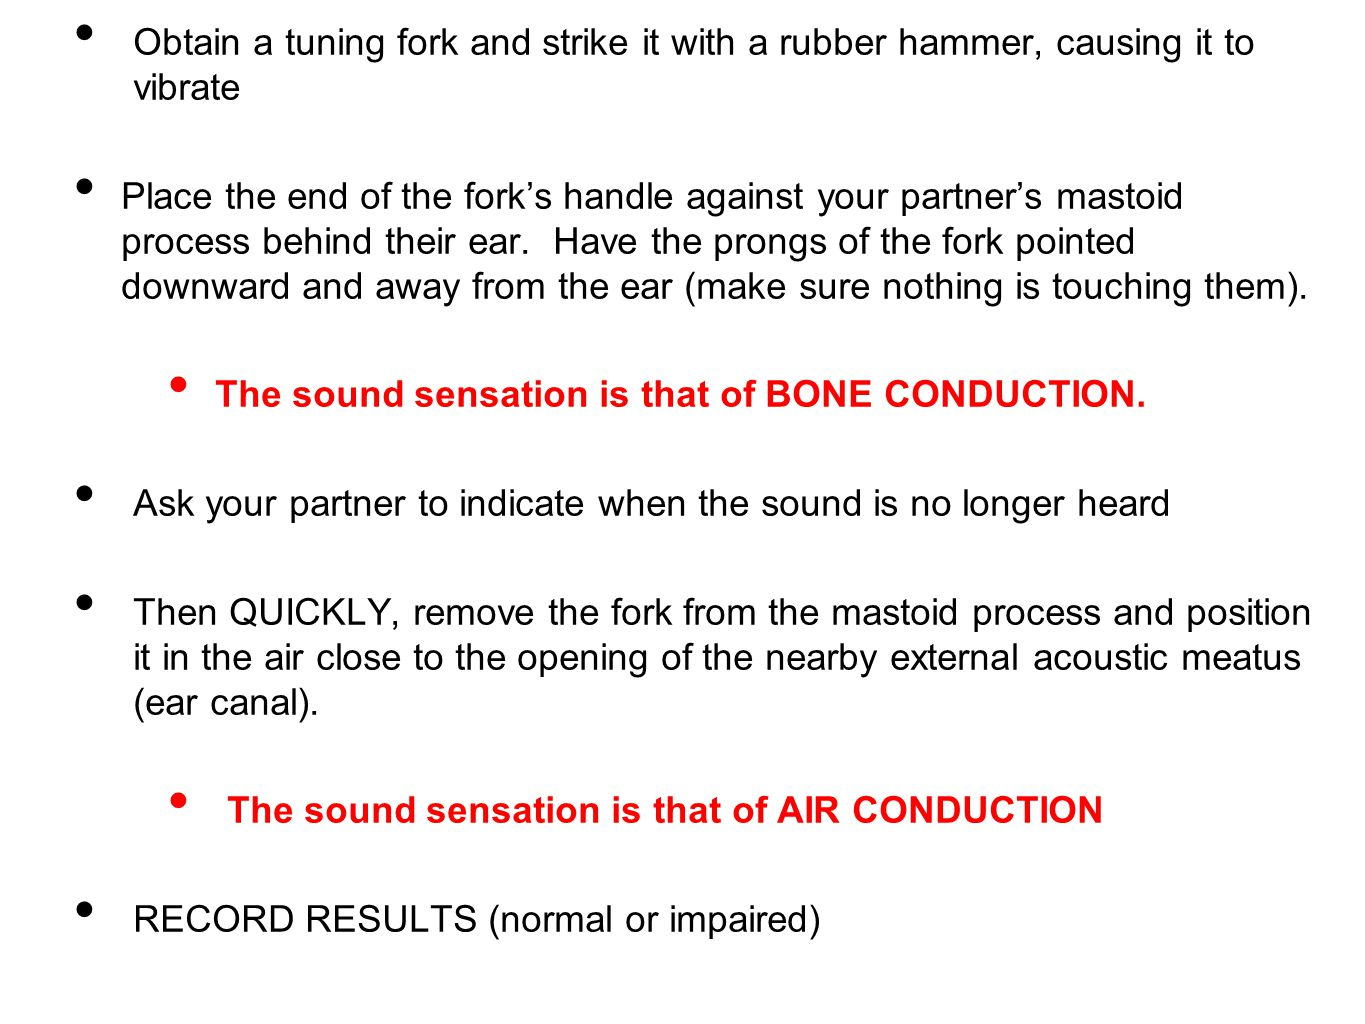 Obtain a tuning fork and strike it with a rubber hammer, causing it to vibrate